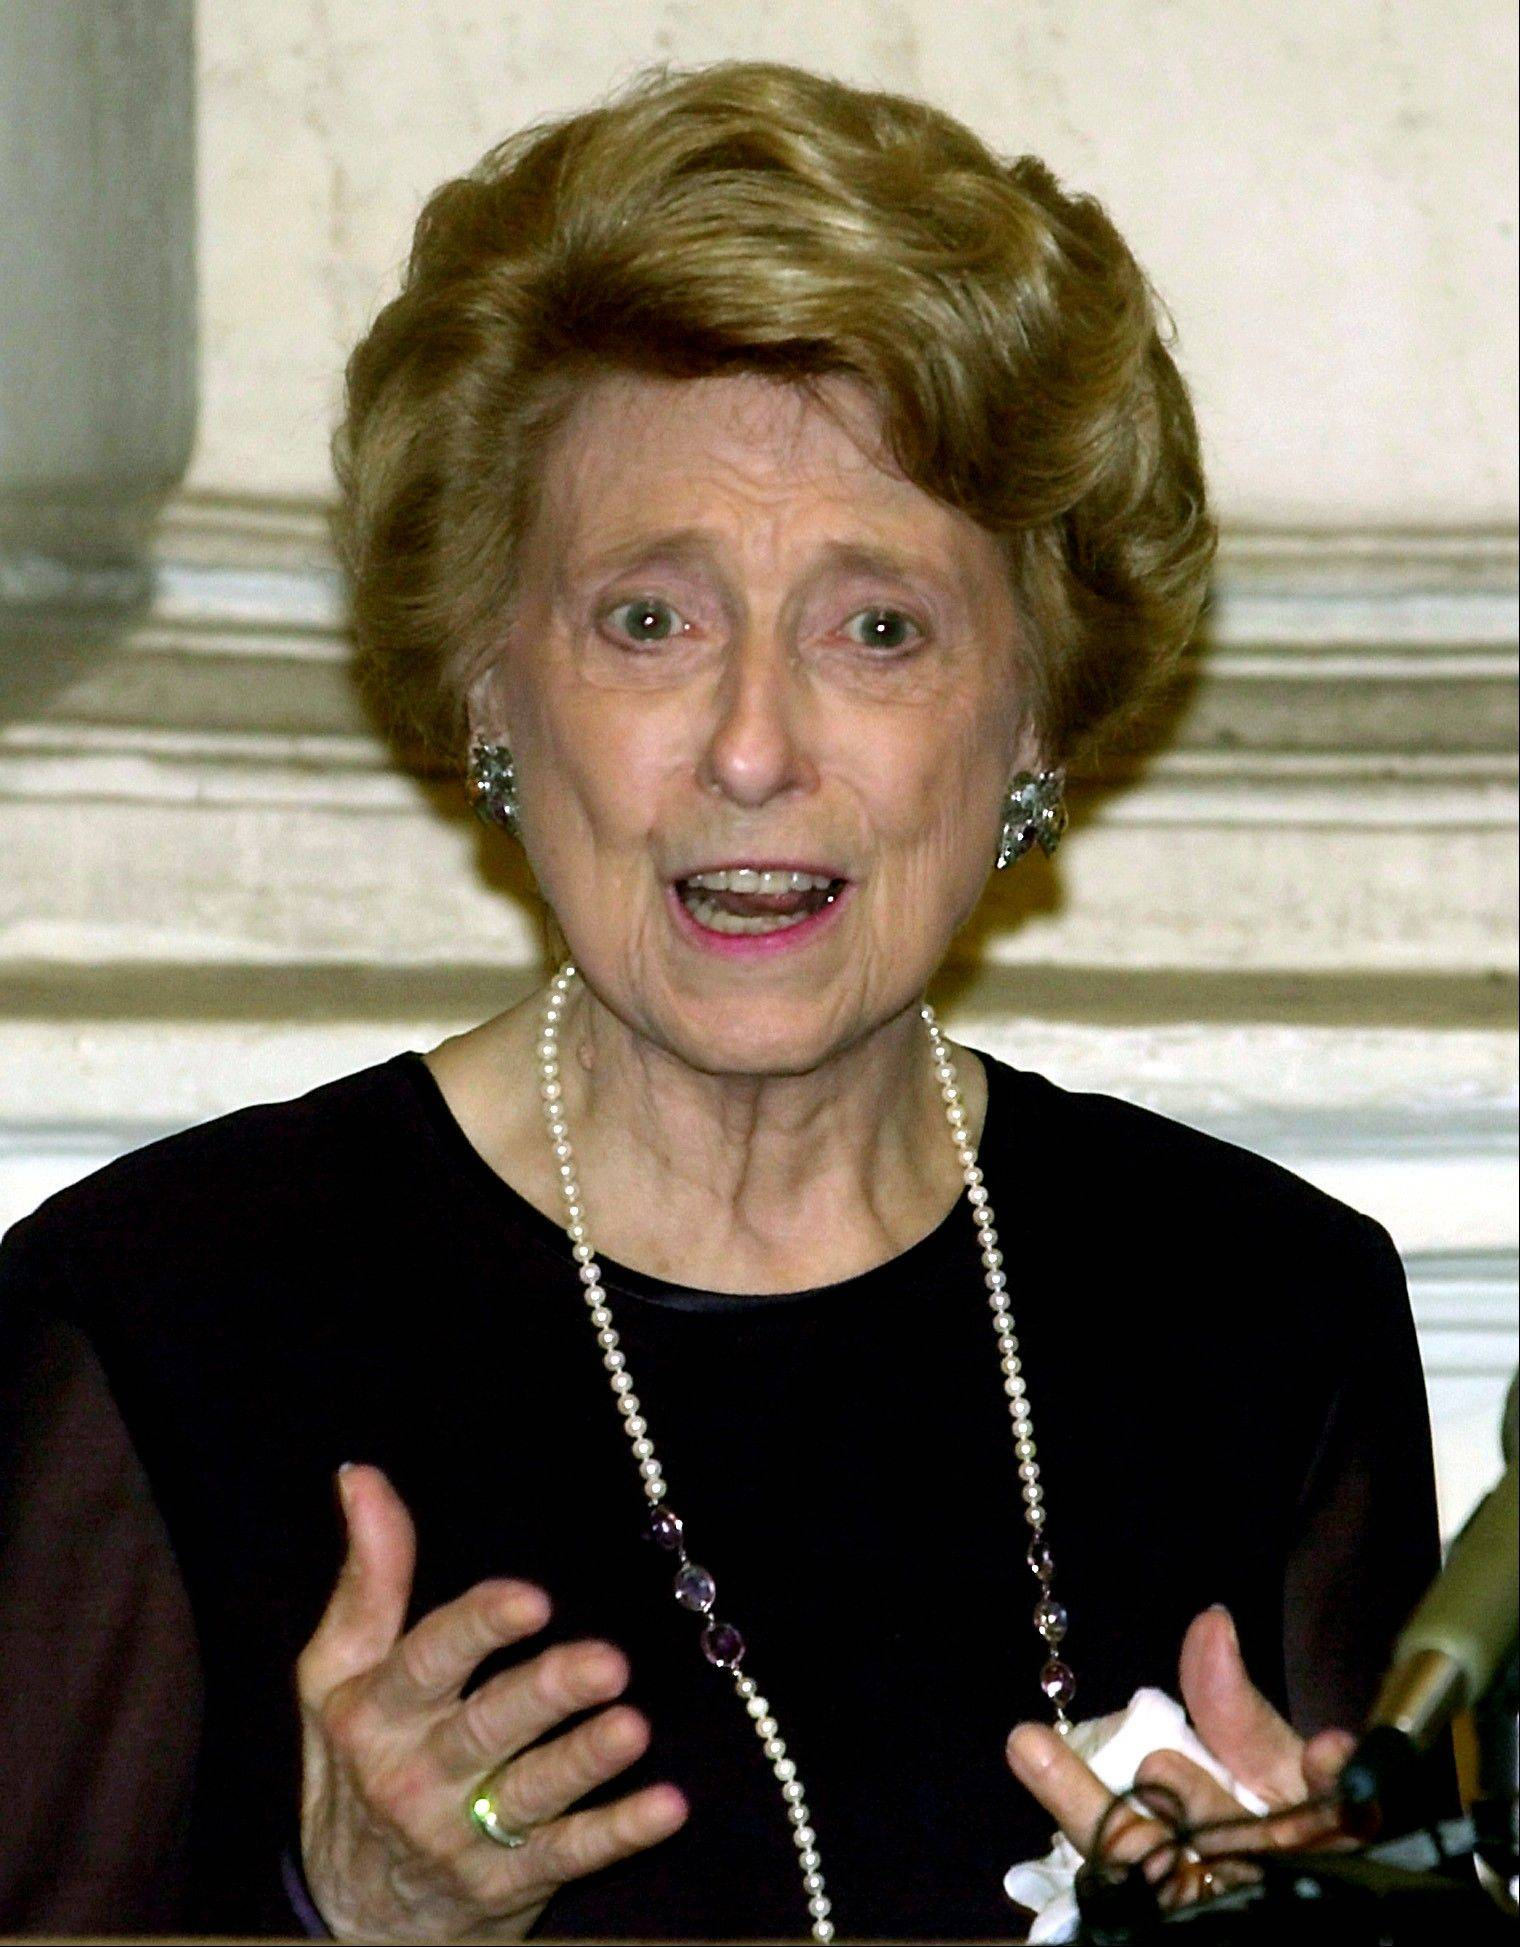 U.S. ambassador to the Holy See Lindy Boggs